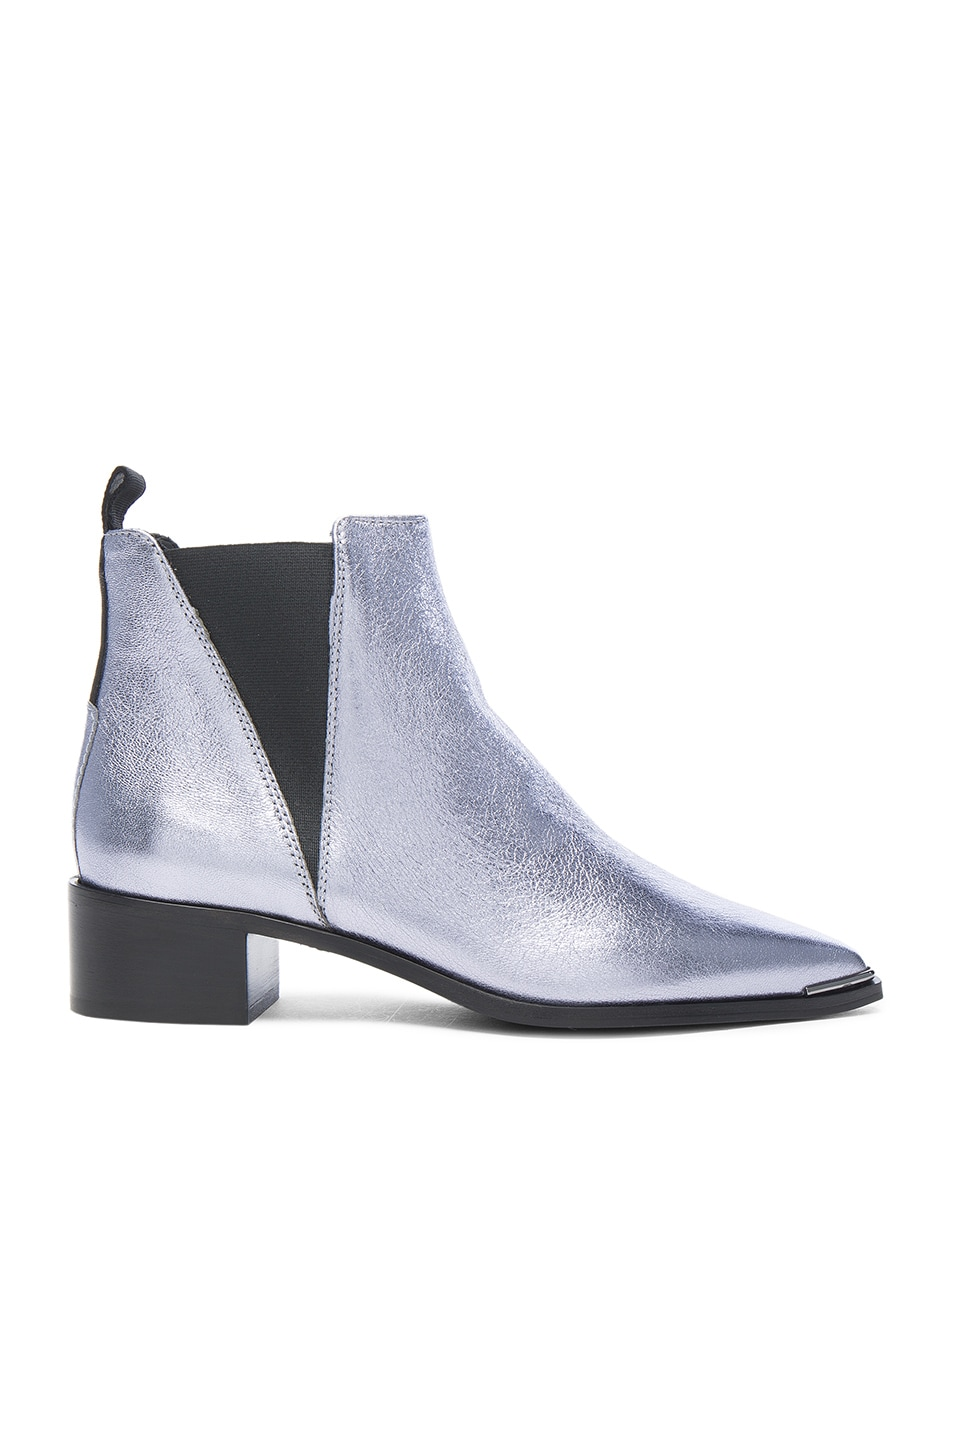 Image 1 of Acne Studios Leather Jensen Space Booties in Lavender Grey